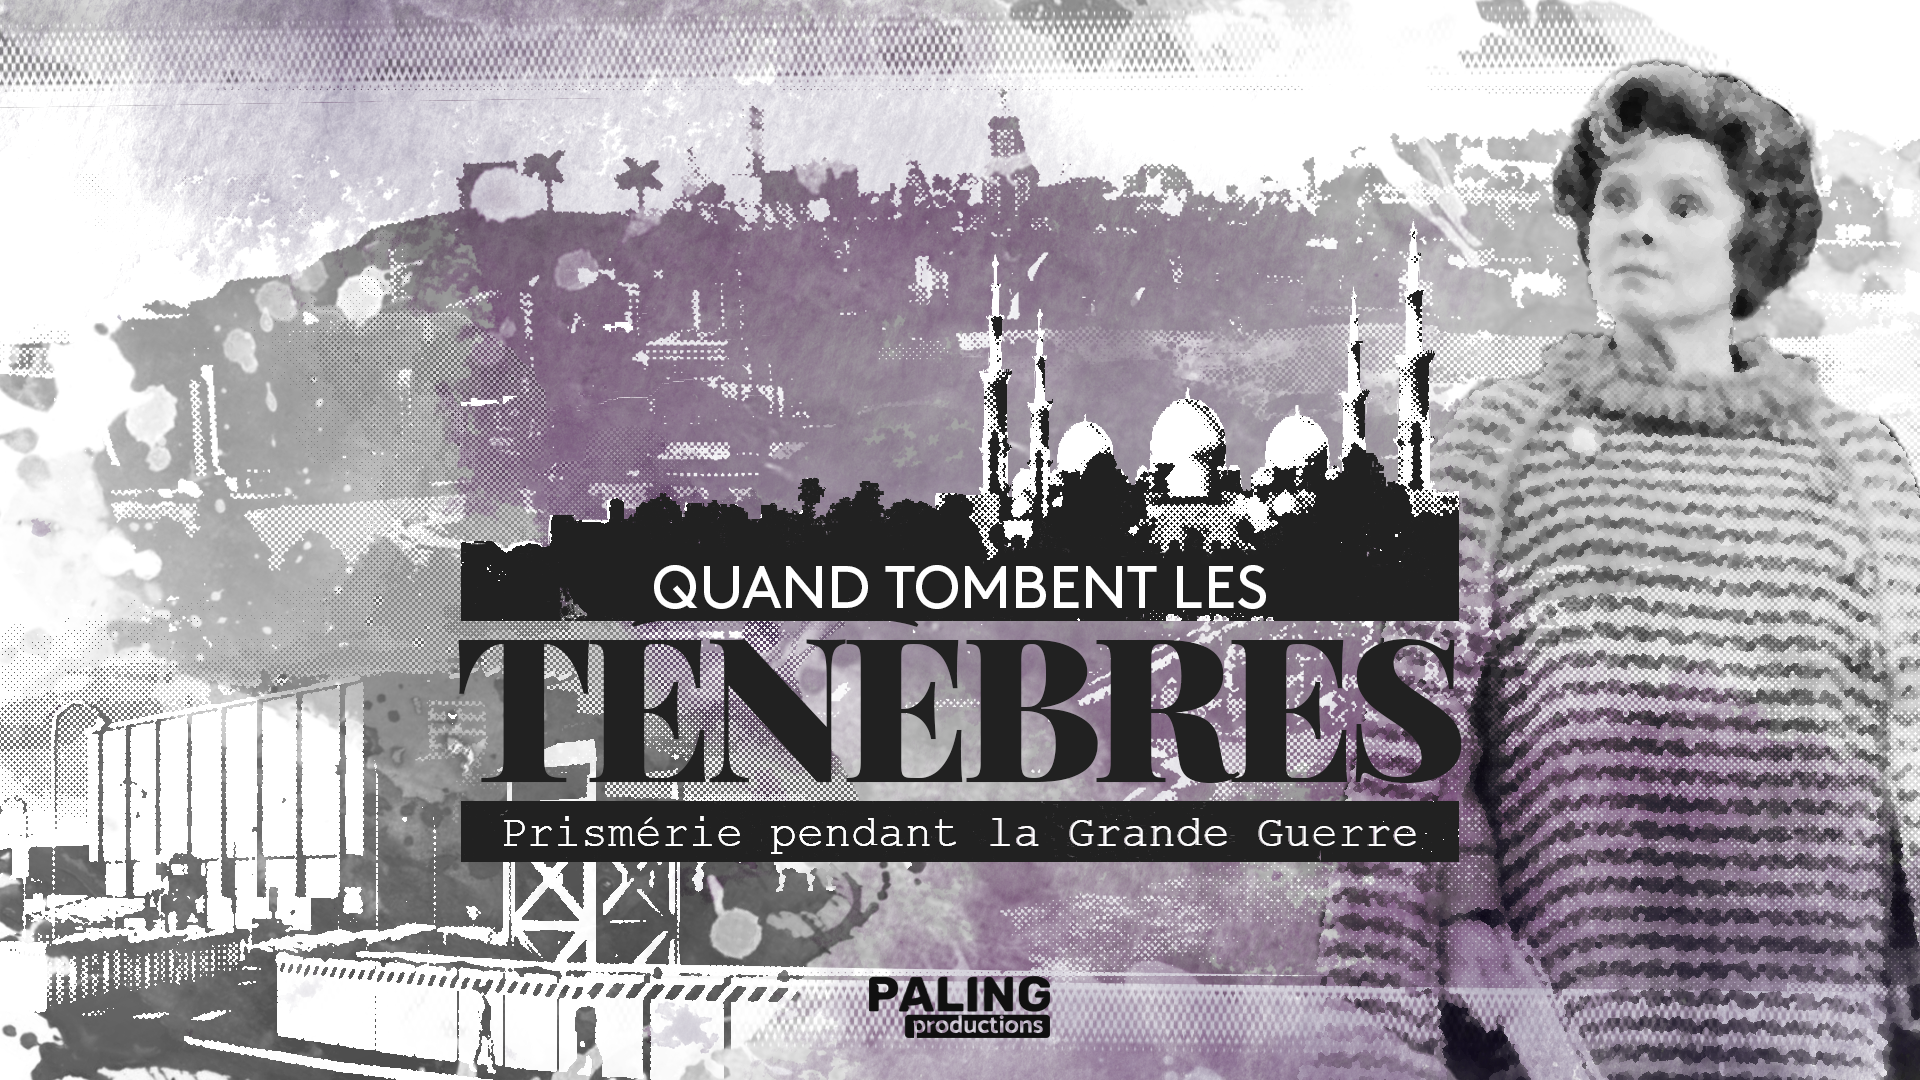 Paling - Page 12 Paling_-_Quand_tombent_les_t%C3%A9n%C3%A8bres_bis_wiki